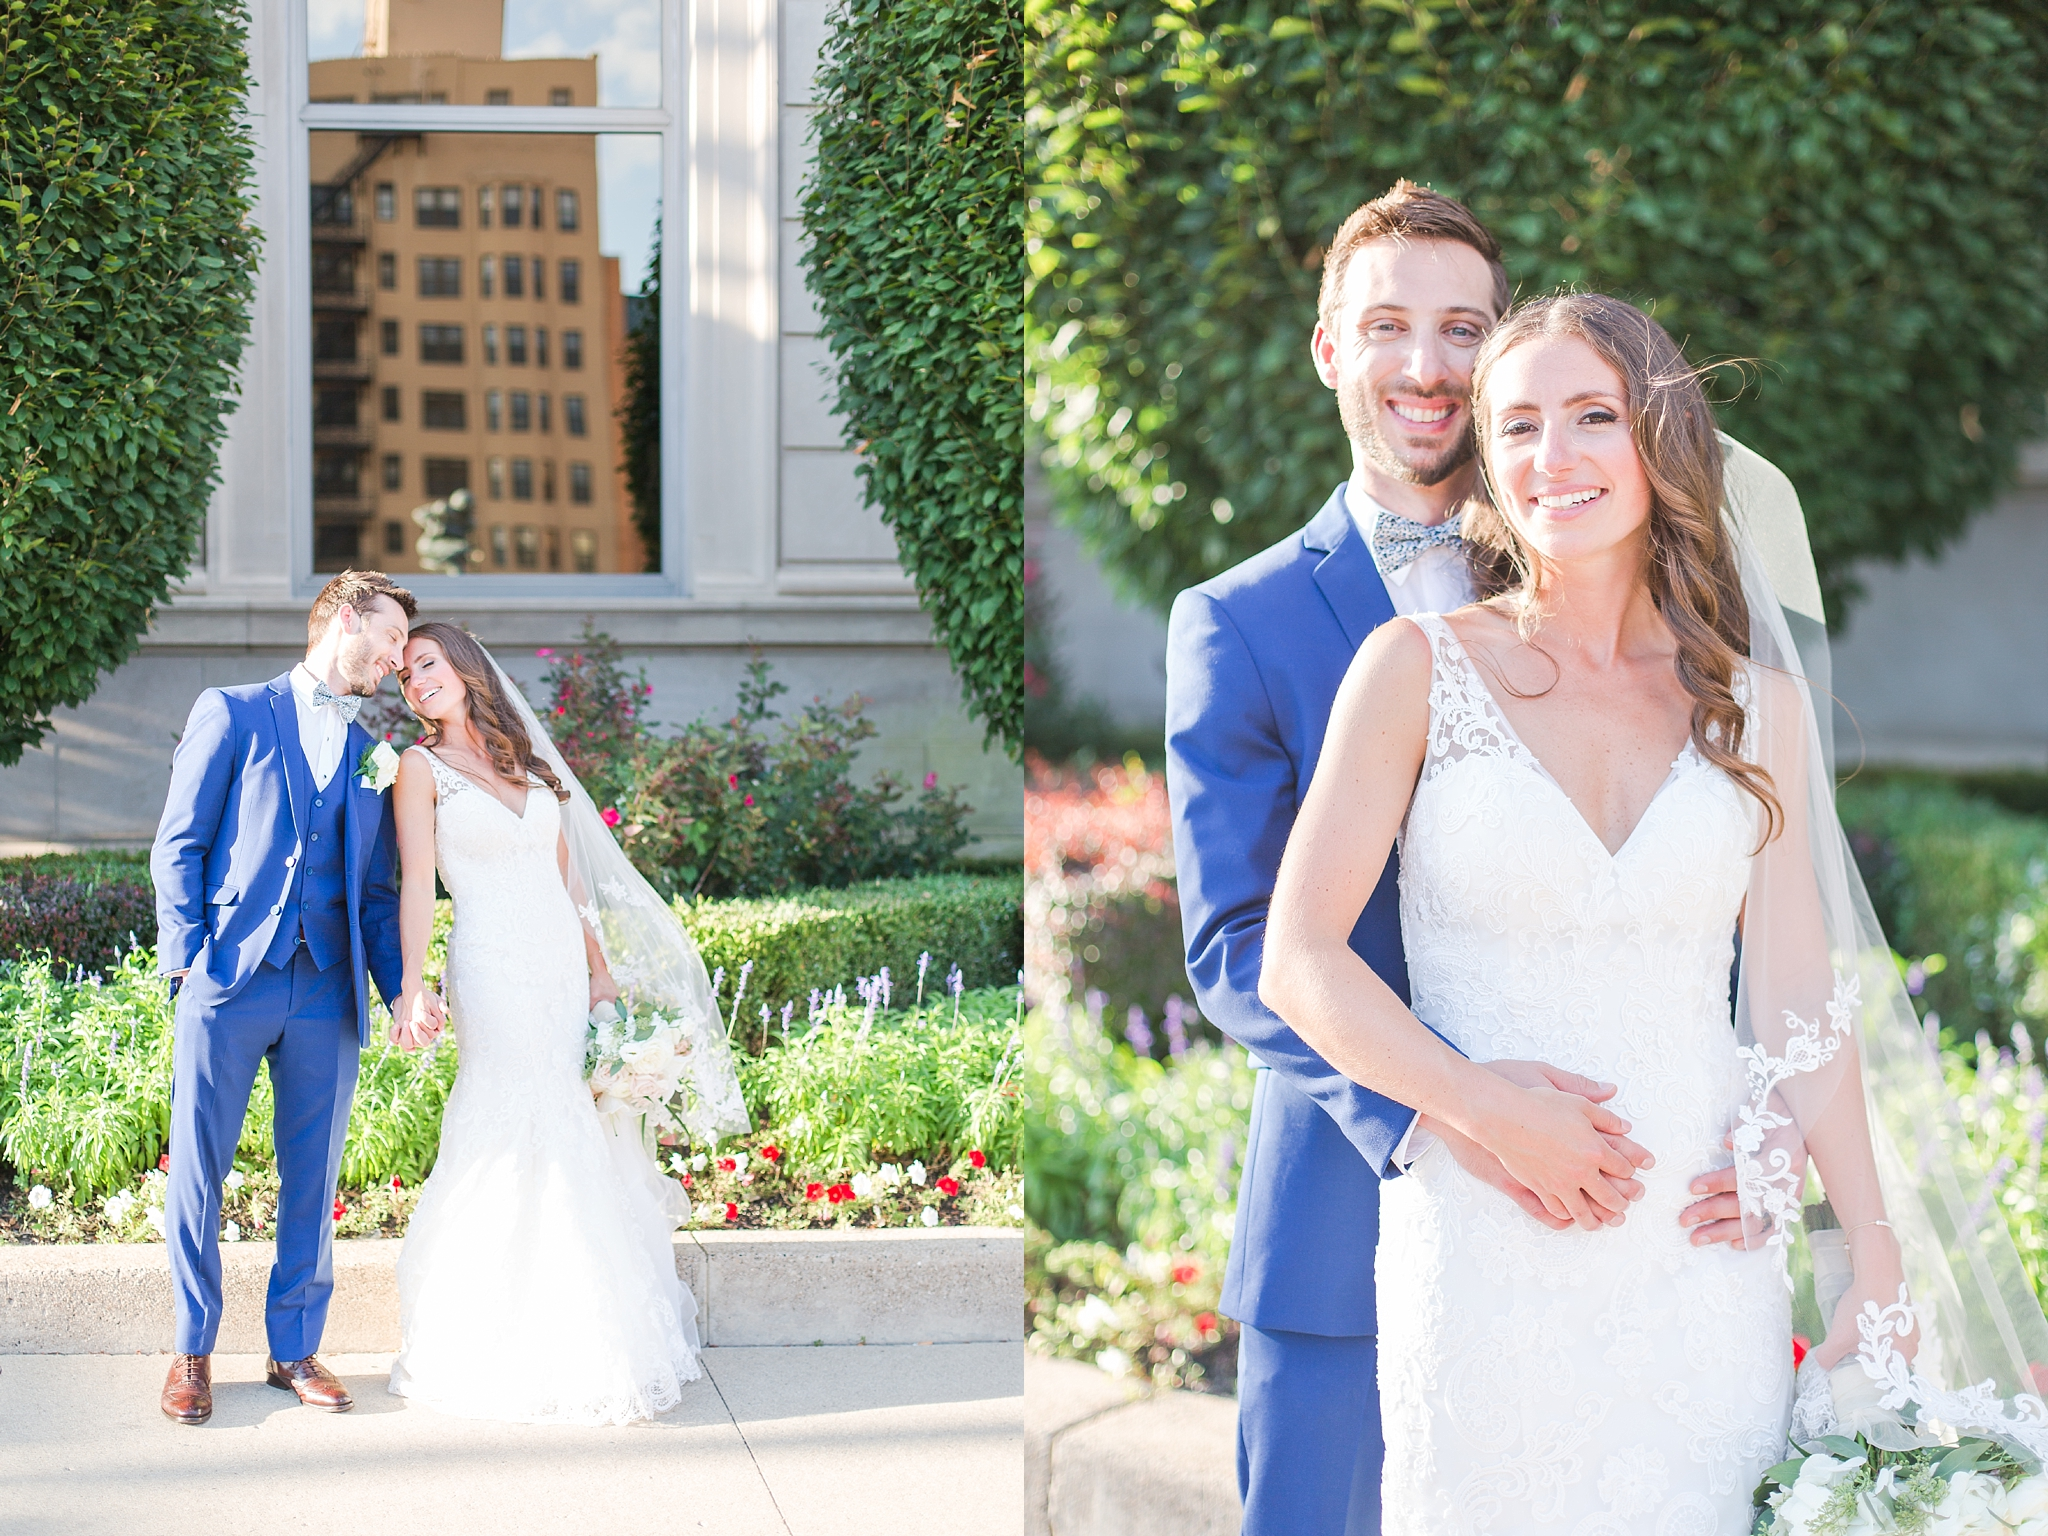 playful-blush-navy-wedding-photos-the-detroit-athletic-club-in-detroit-michigan-by-courtney-carolyn-photography_0051.jpg